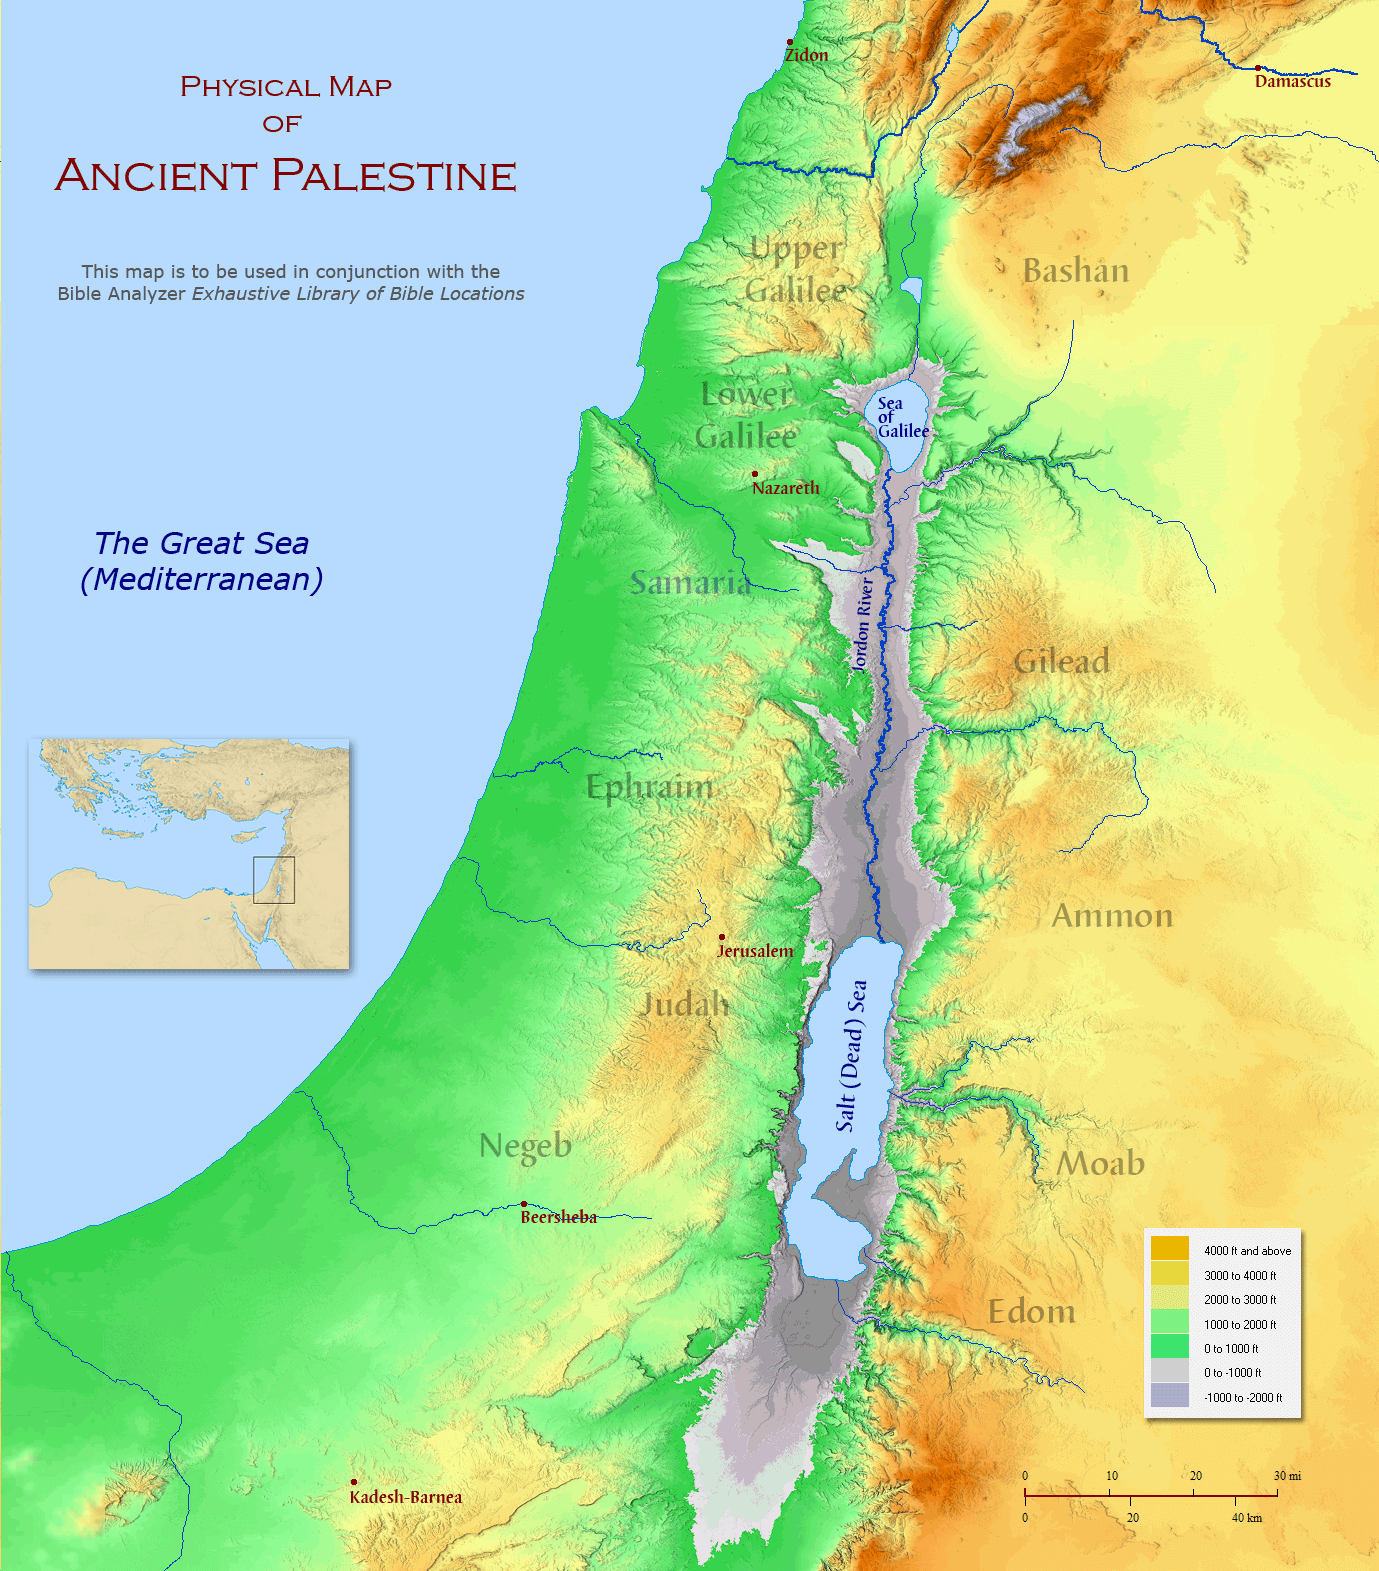 Map - Kidron - BibleBento.com Kidron Valley Map on temple mount map, hinnom valley map, gihon spring, tyropoeon valley, united states valley map, savannah valley map, valley of josaphat map, ottawa valley map, lauterbrunnen valley map, valley of rephaim map, church of the holy sepulchre map, hezekiah's tunnel map, tel arad map, valley of josaphat, jezreel valley map, jordan rift valley map, gihon spring map, jordan river map, panamint valley map, jerusalem map, hudson valley map, mount of olives map, gethsemane map,